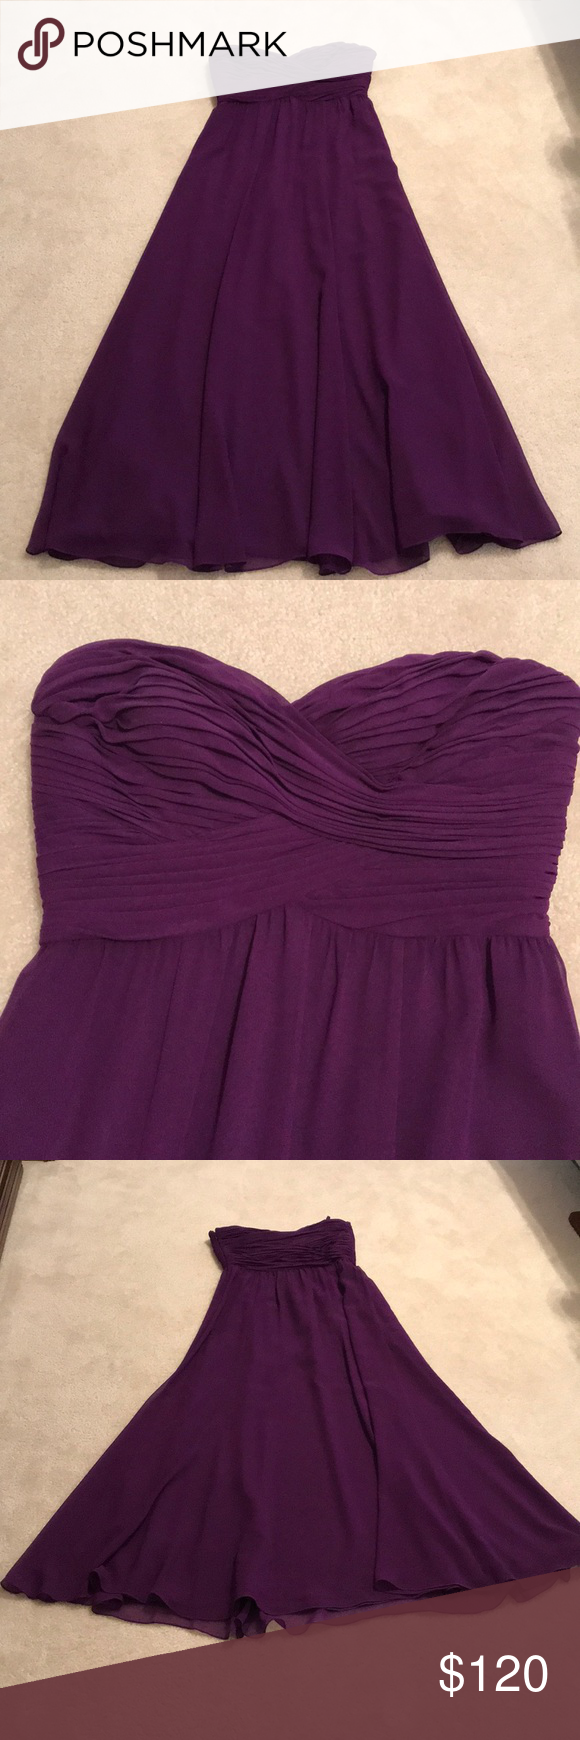 c25590625aa Lauren ralph lauren strapless purple gown size lauren ralph lauren long  evening strapless gown png 580x1740